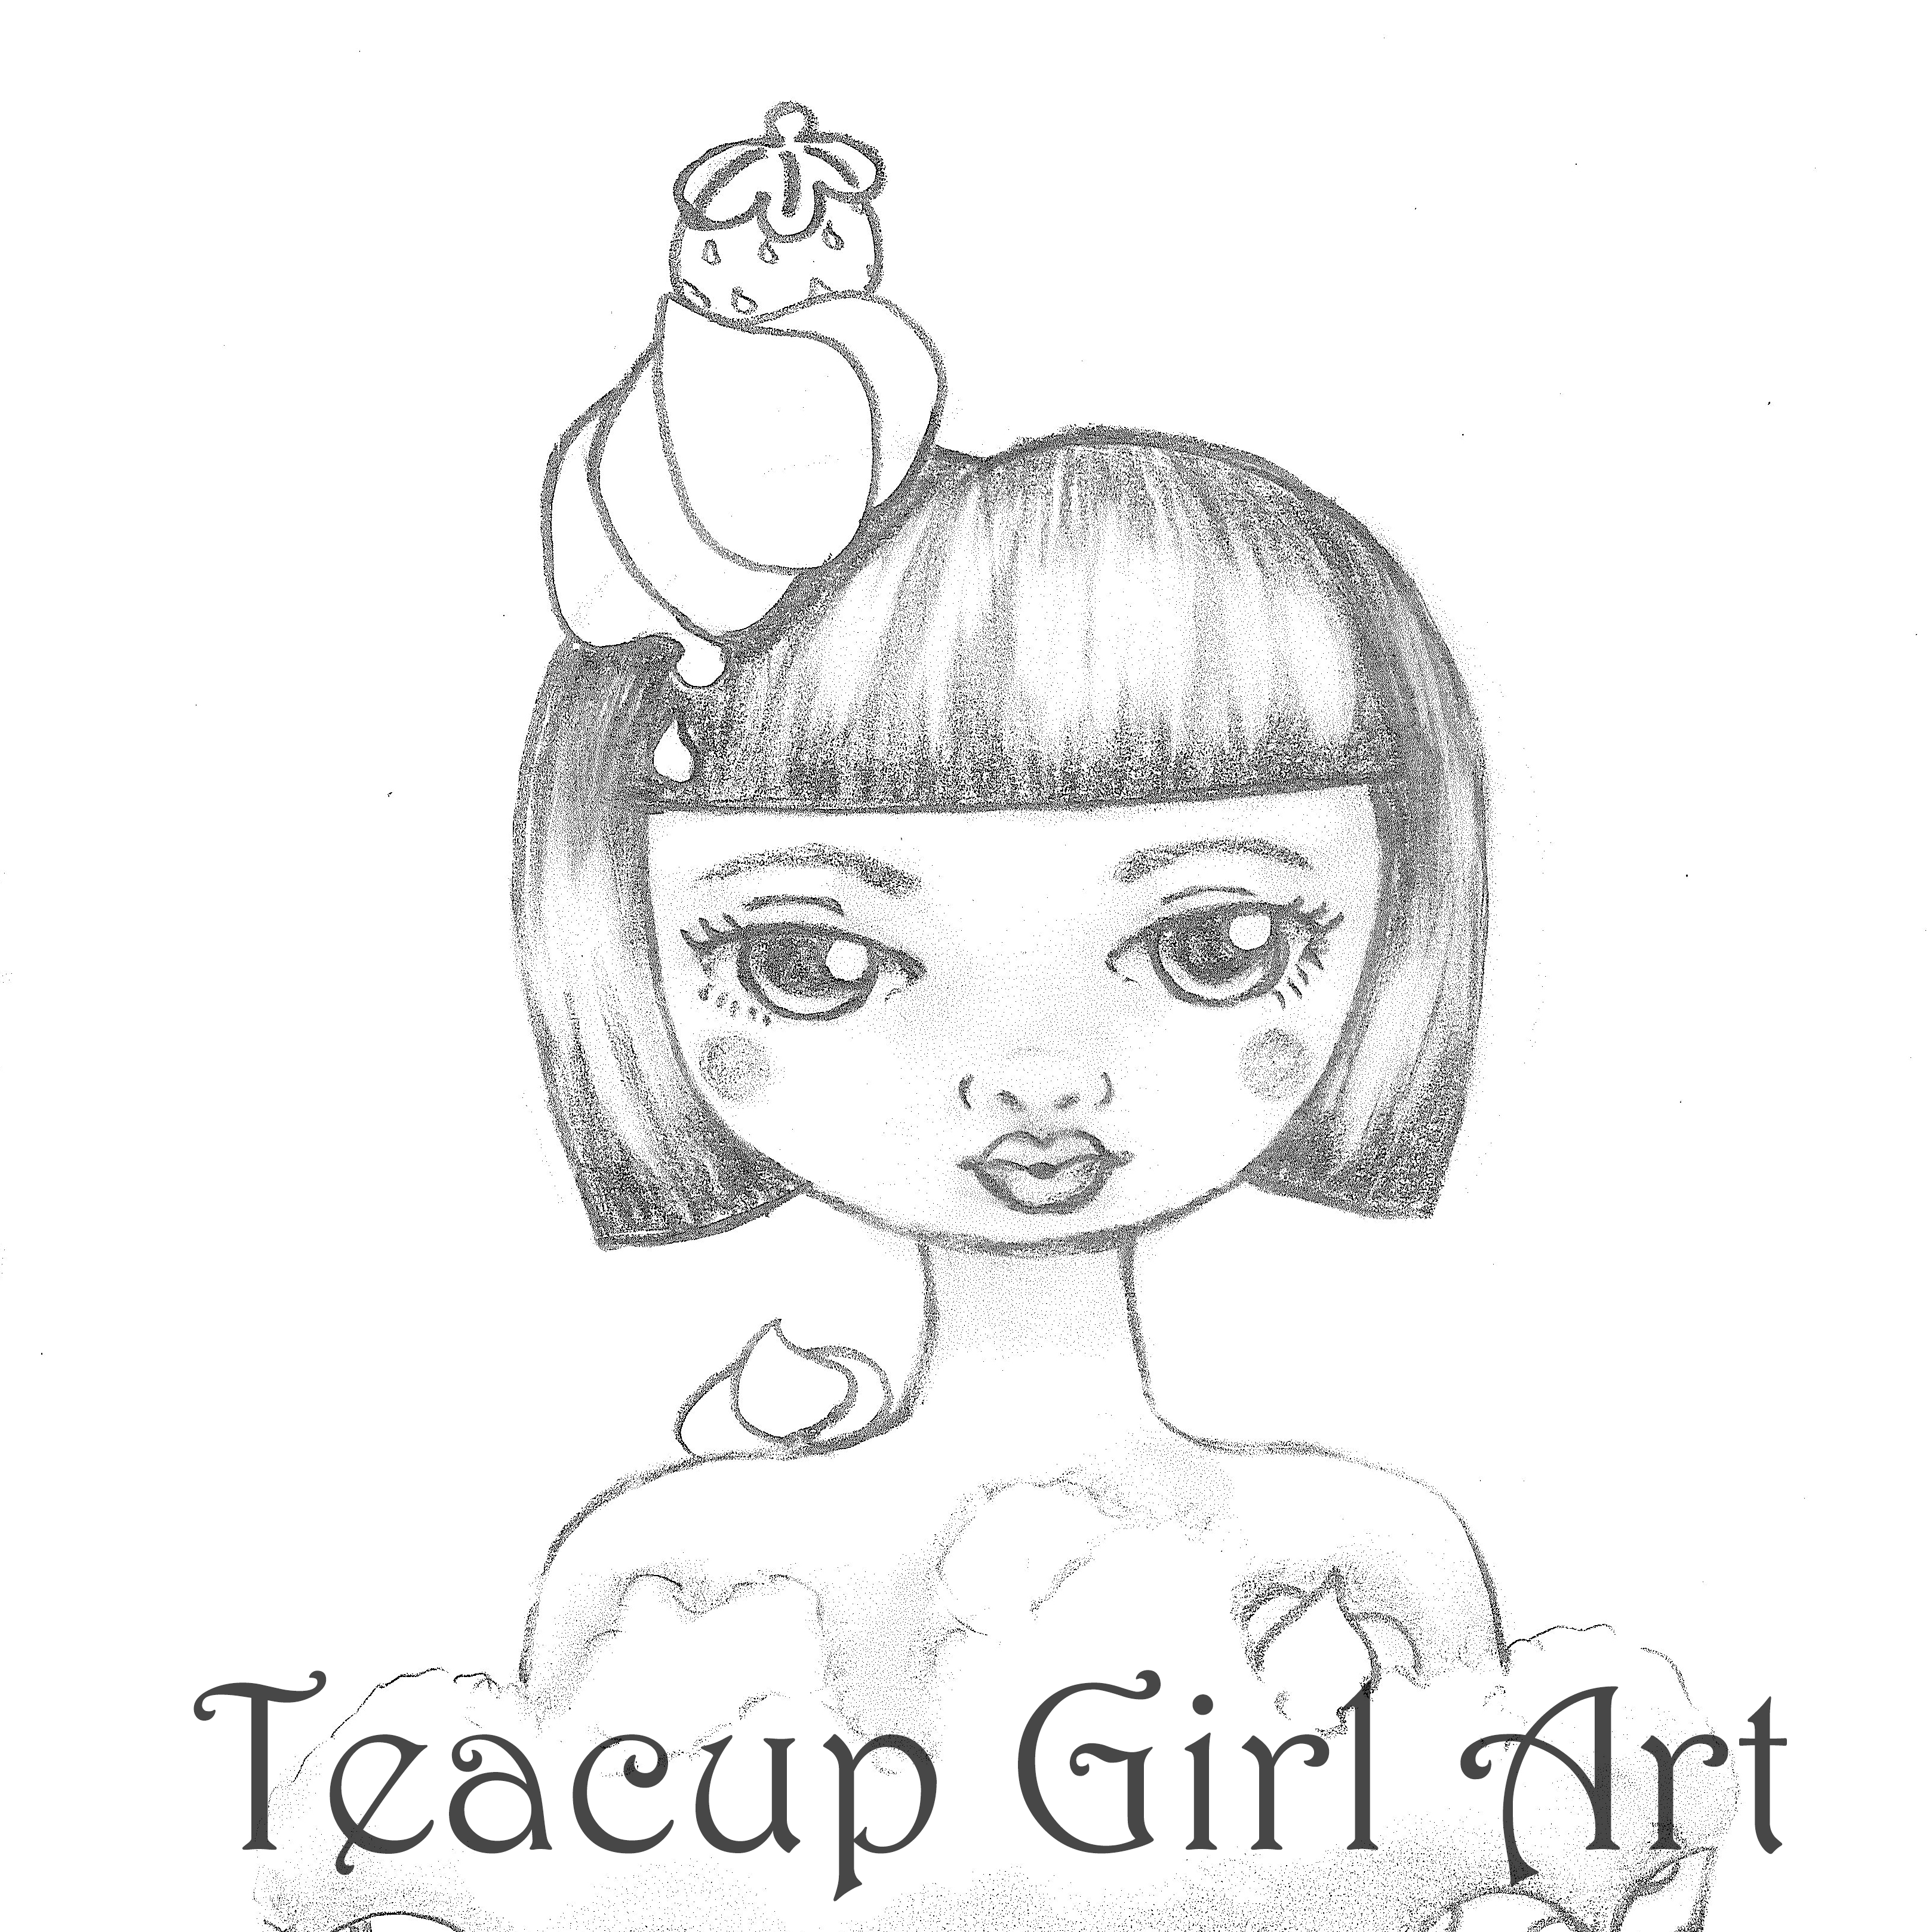 Teacup Girl Art